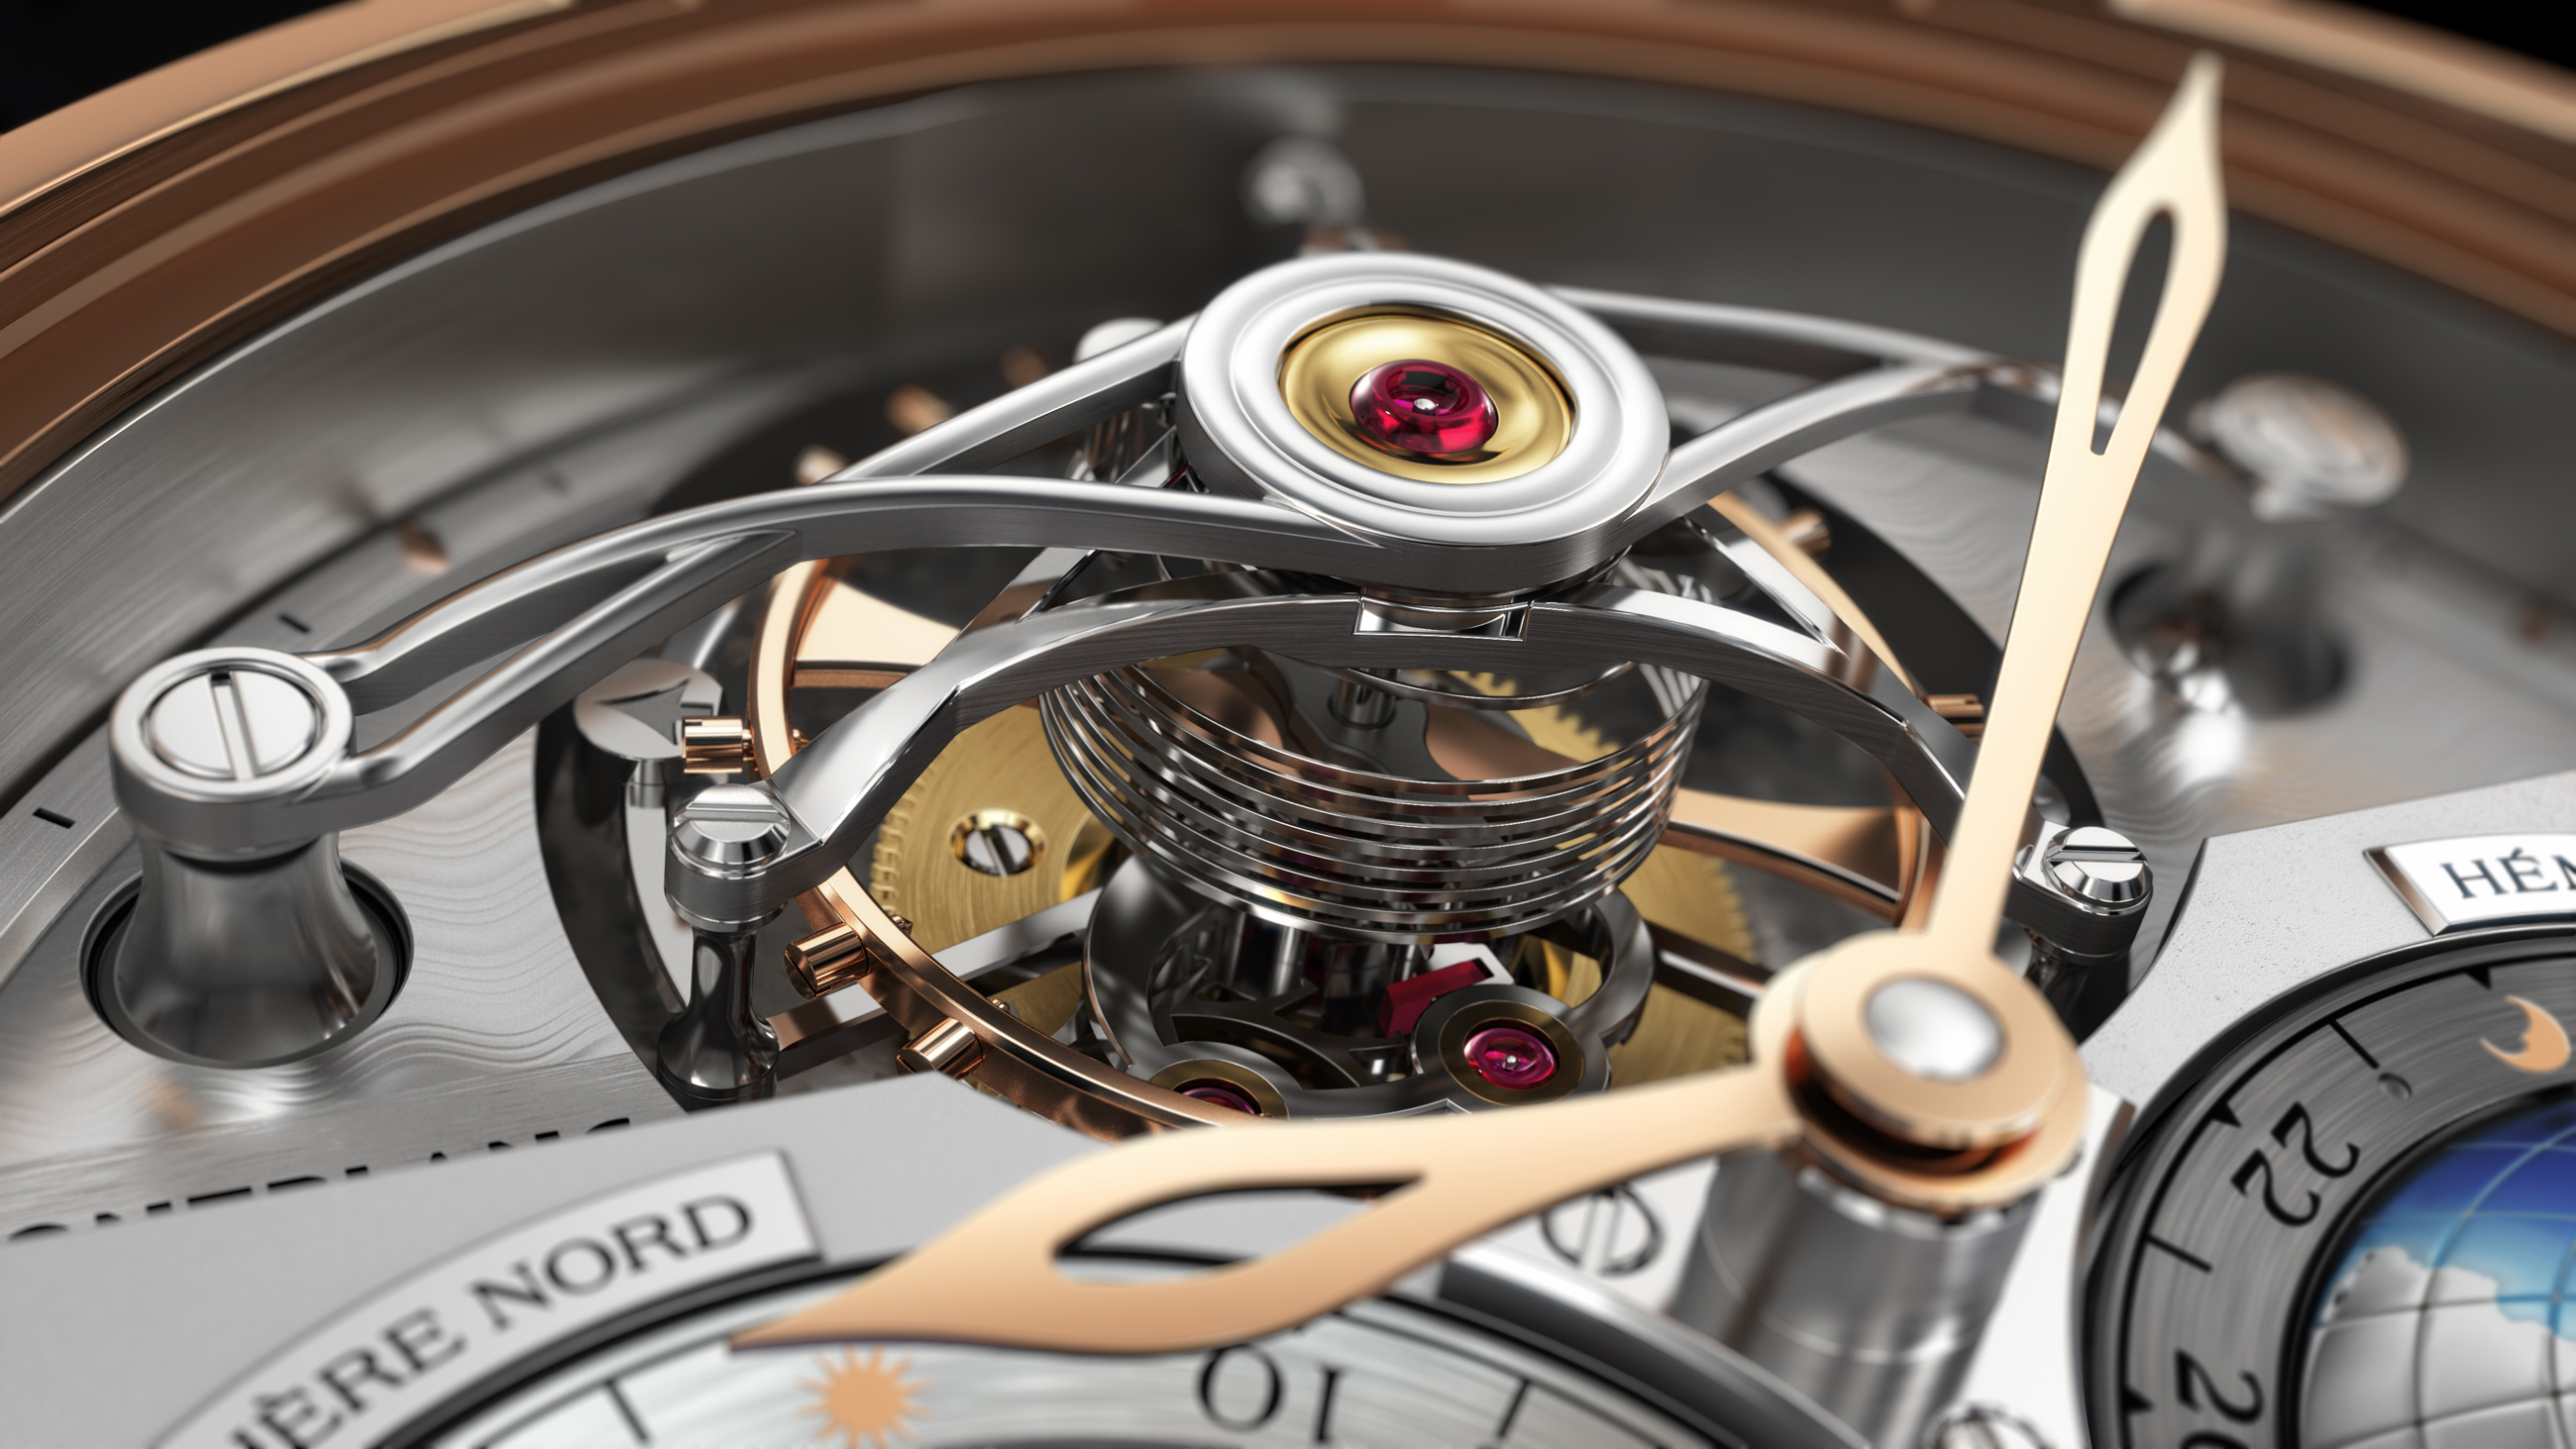 Montblanc Collection Villeret Tourbillon Cylindrique Geosphères Vasco da Gama detalle del tourbillon